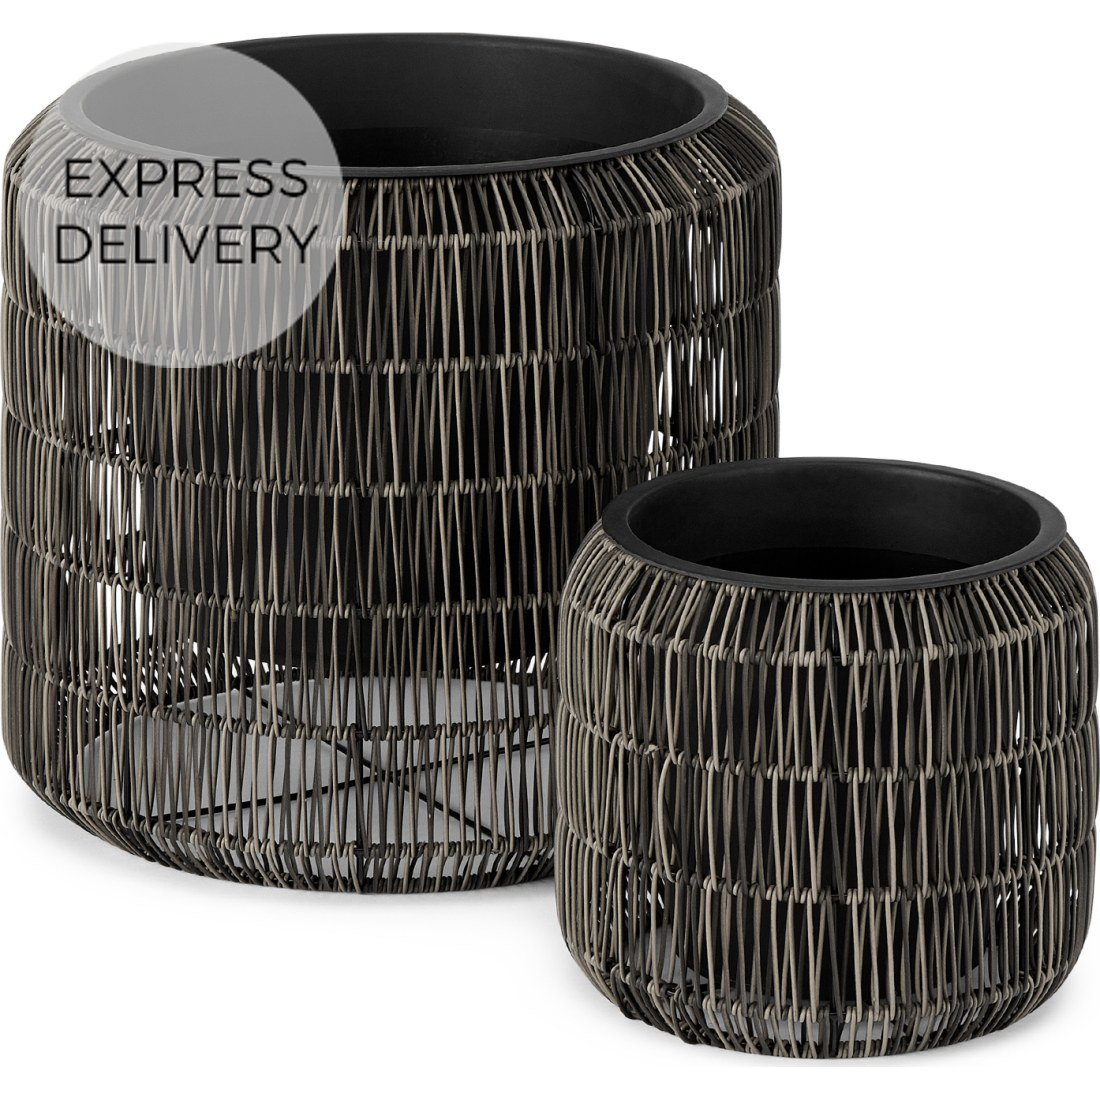 image-Nadda Set of 2 Round Polyrattan Plant Stands, Brown